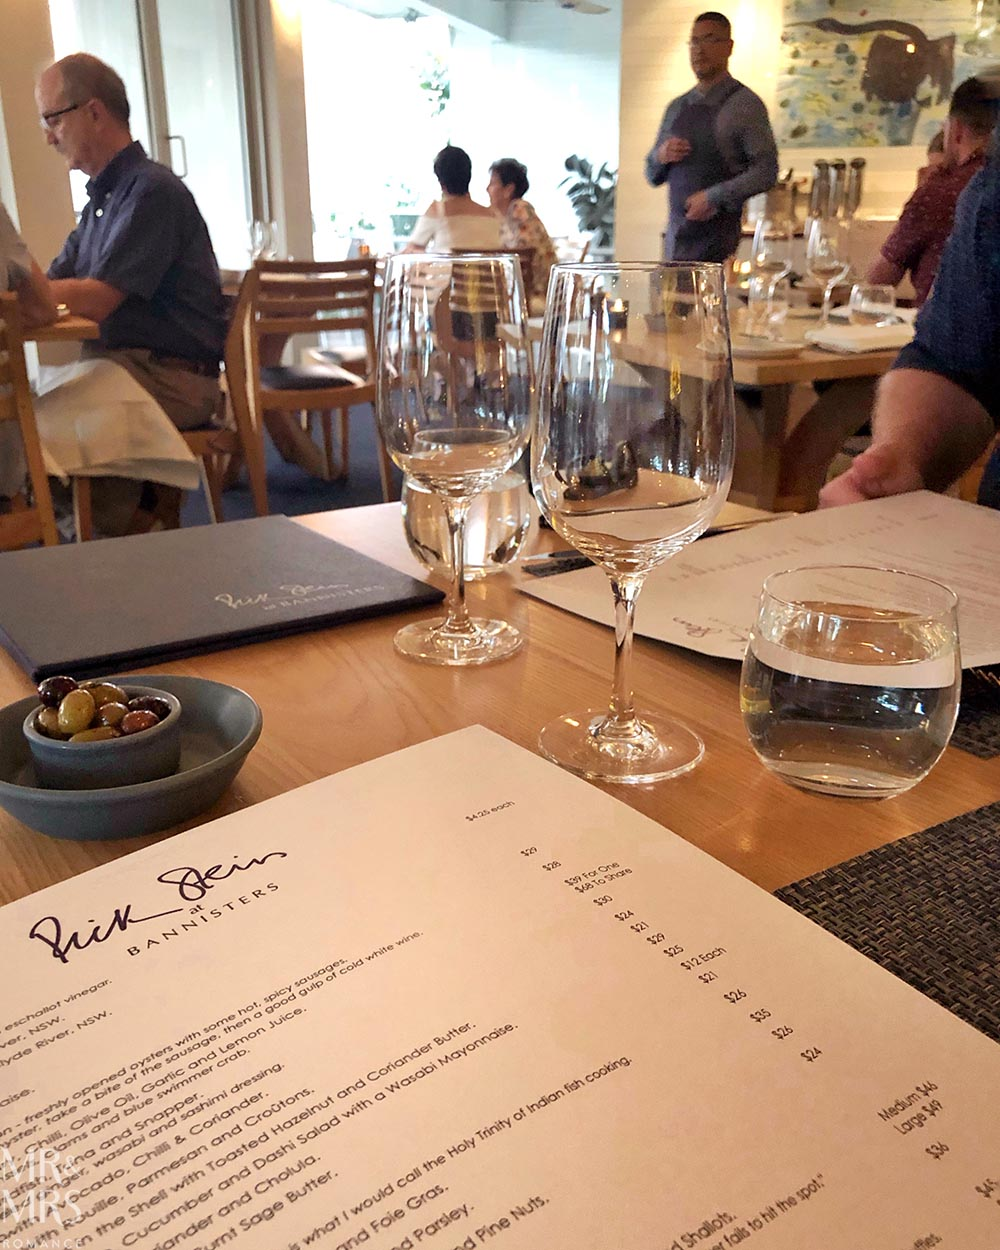 Rick Stein at Bannisters Mollymook, NSW - menu and interior